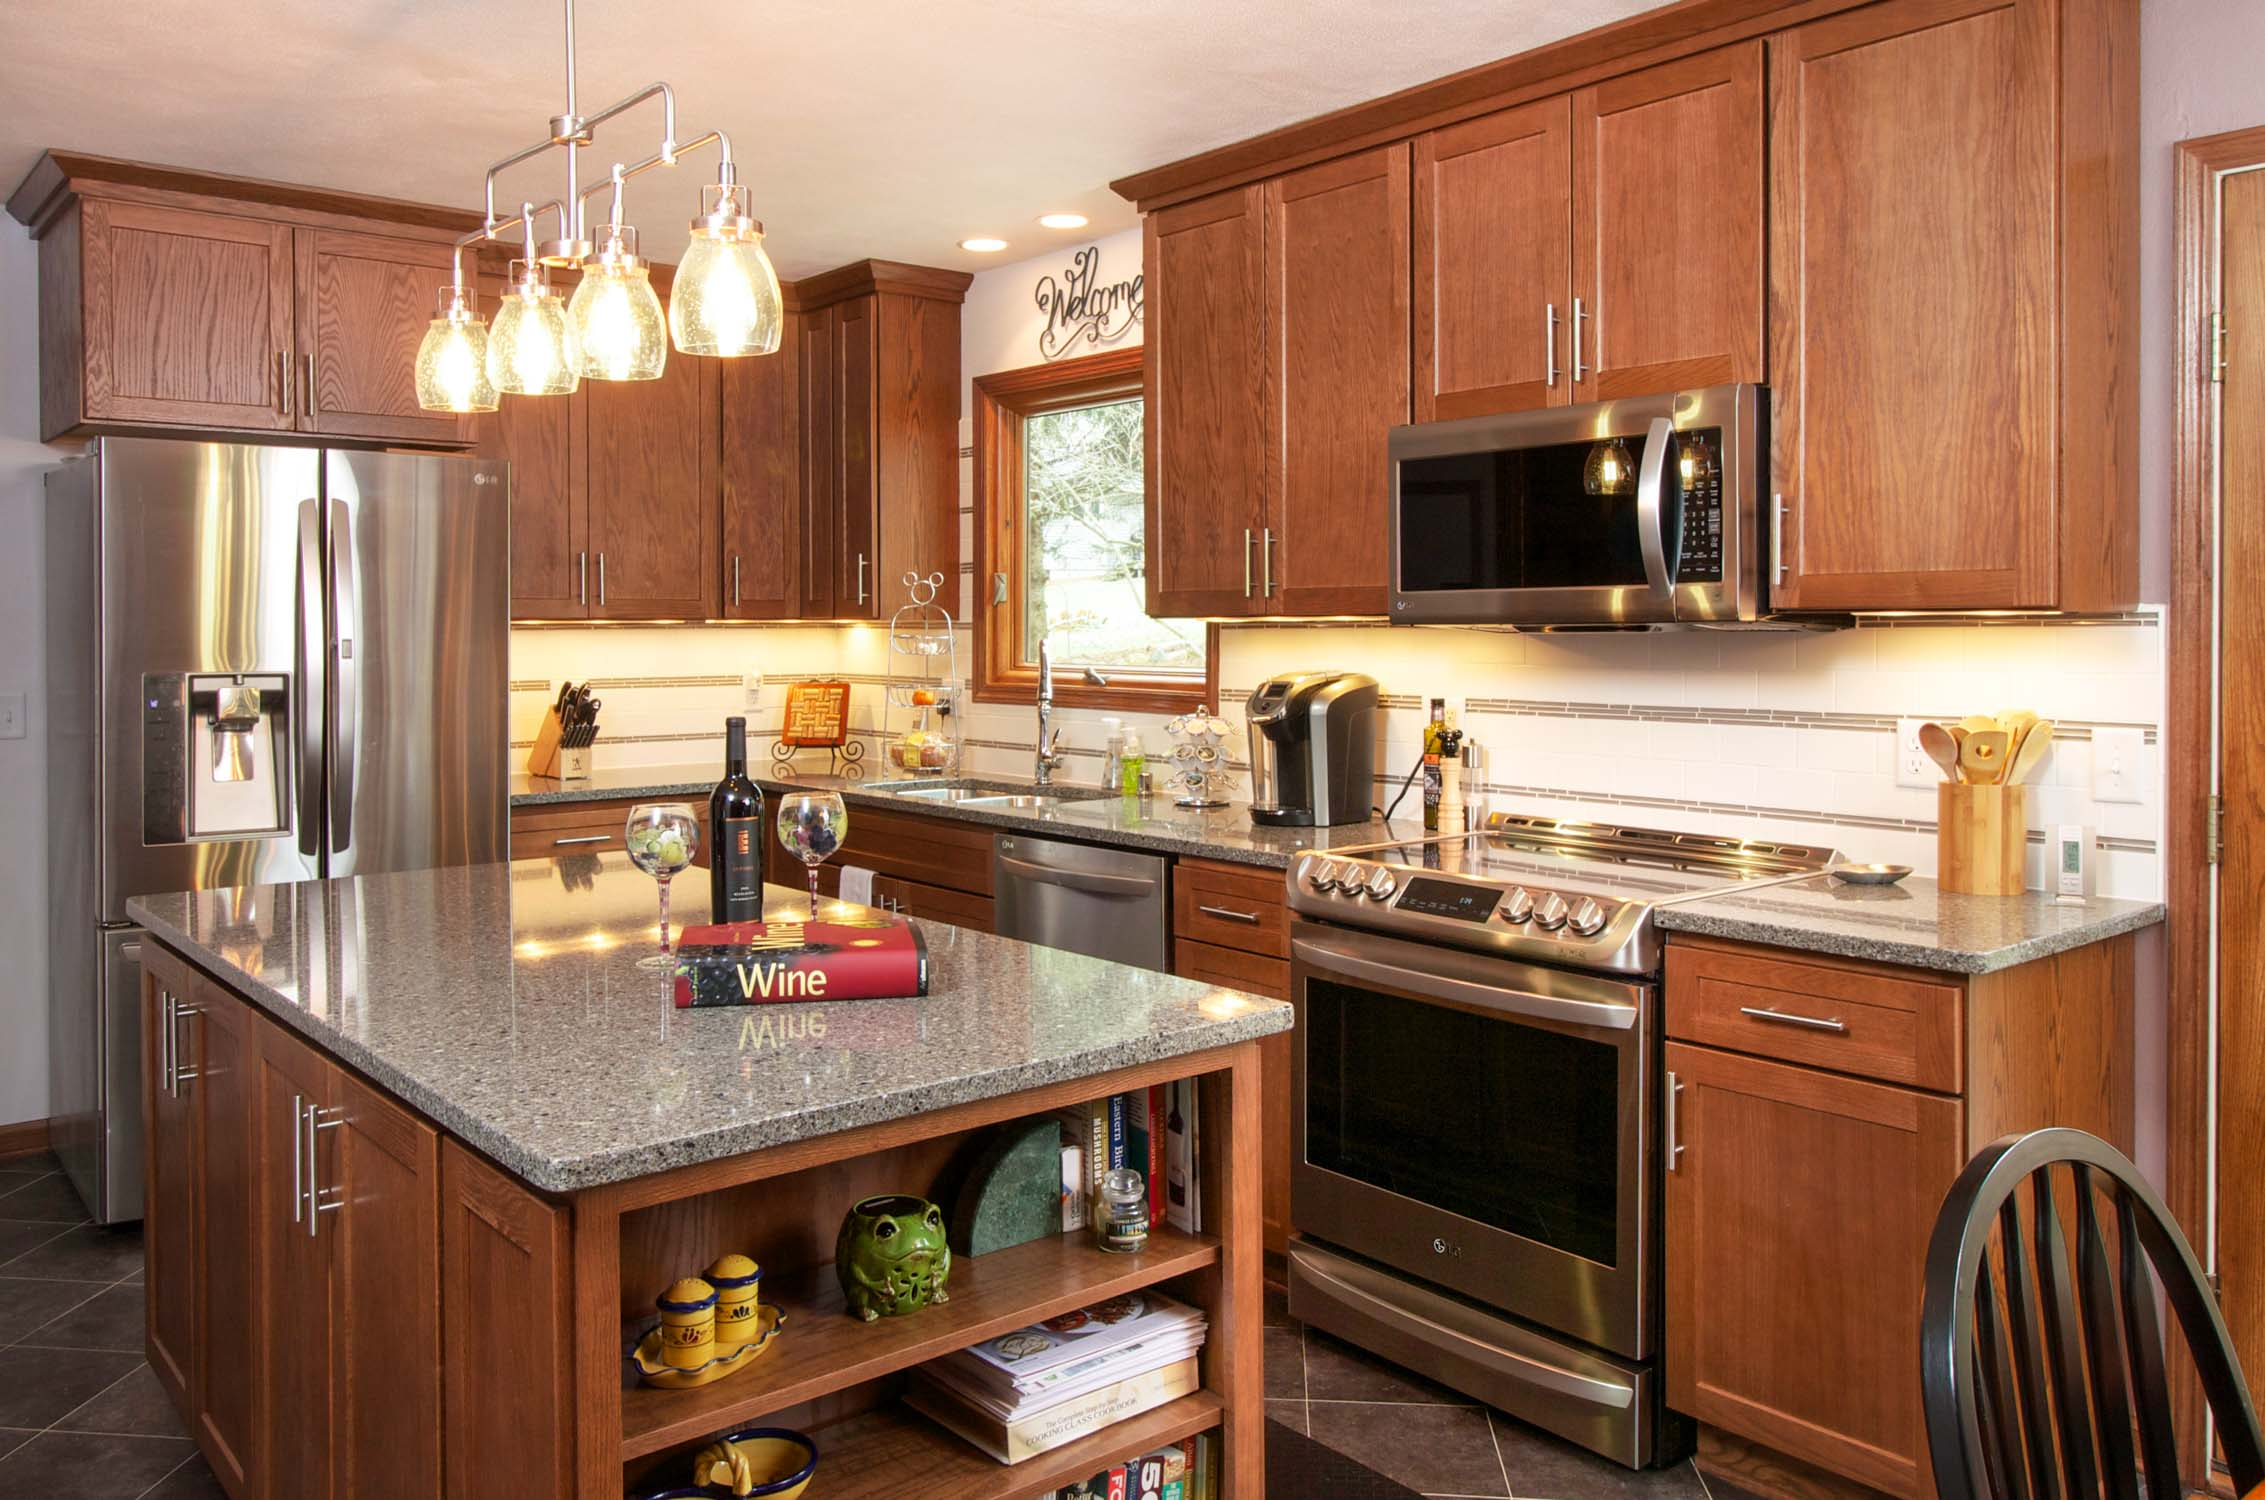 - If your space is too narrow for seating, then placing cabinets on both the front and back of the island can provide extra storage and allow for the deeper countertop space that is so desirable.